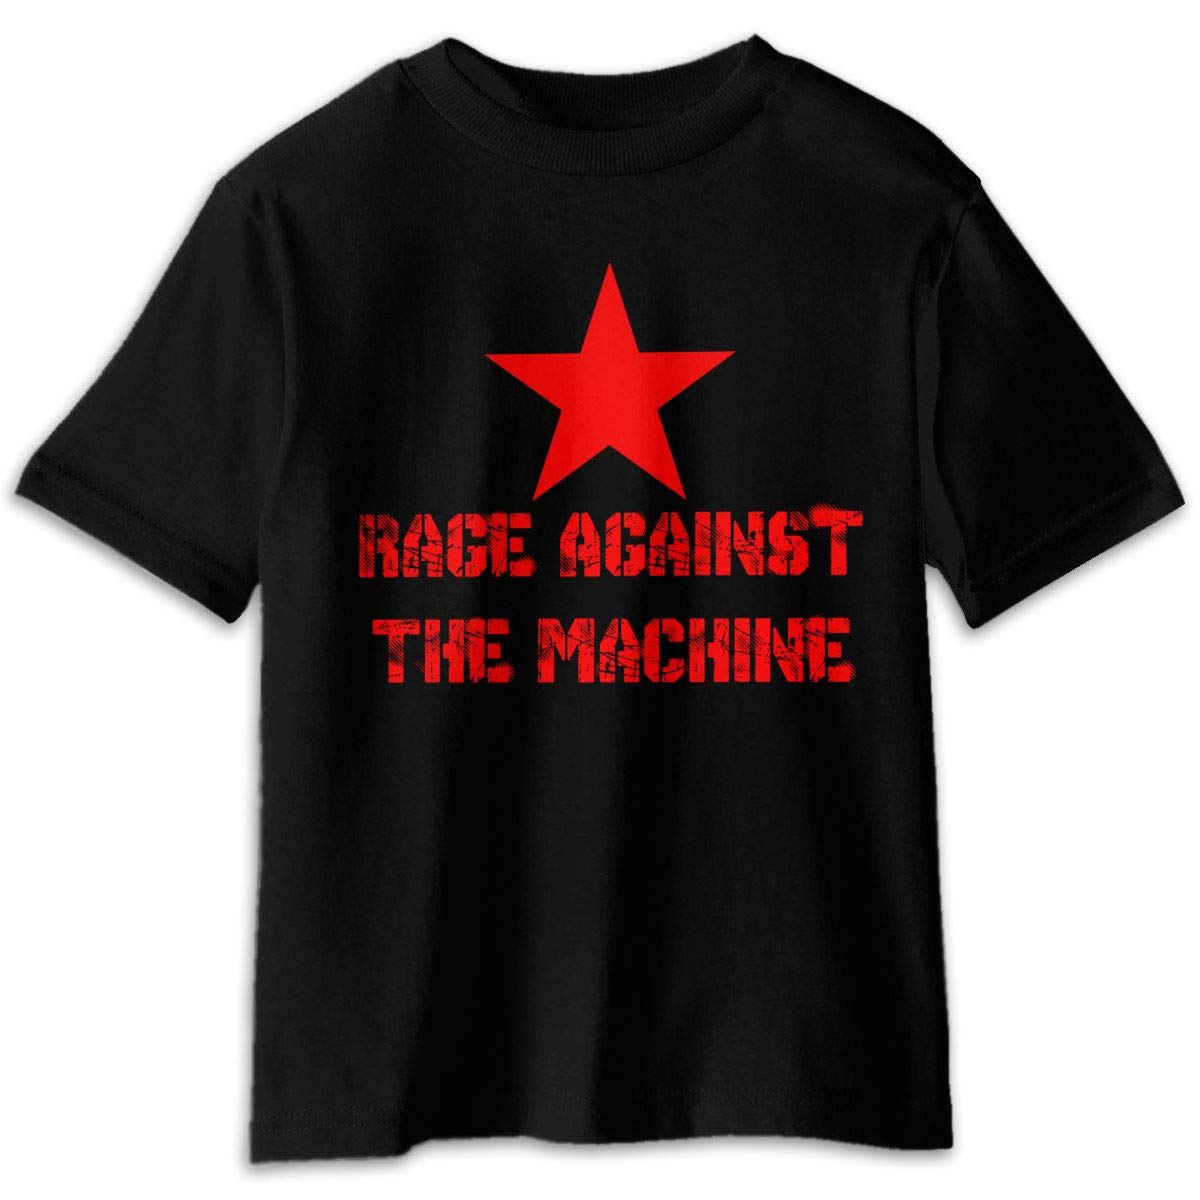 Rage Against The Machine Anarchy Shirt Short Sleeve T Shirt Comfortable Shirt For Girl 913